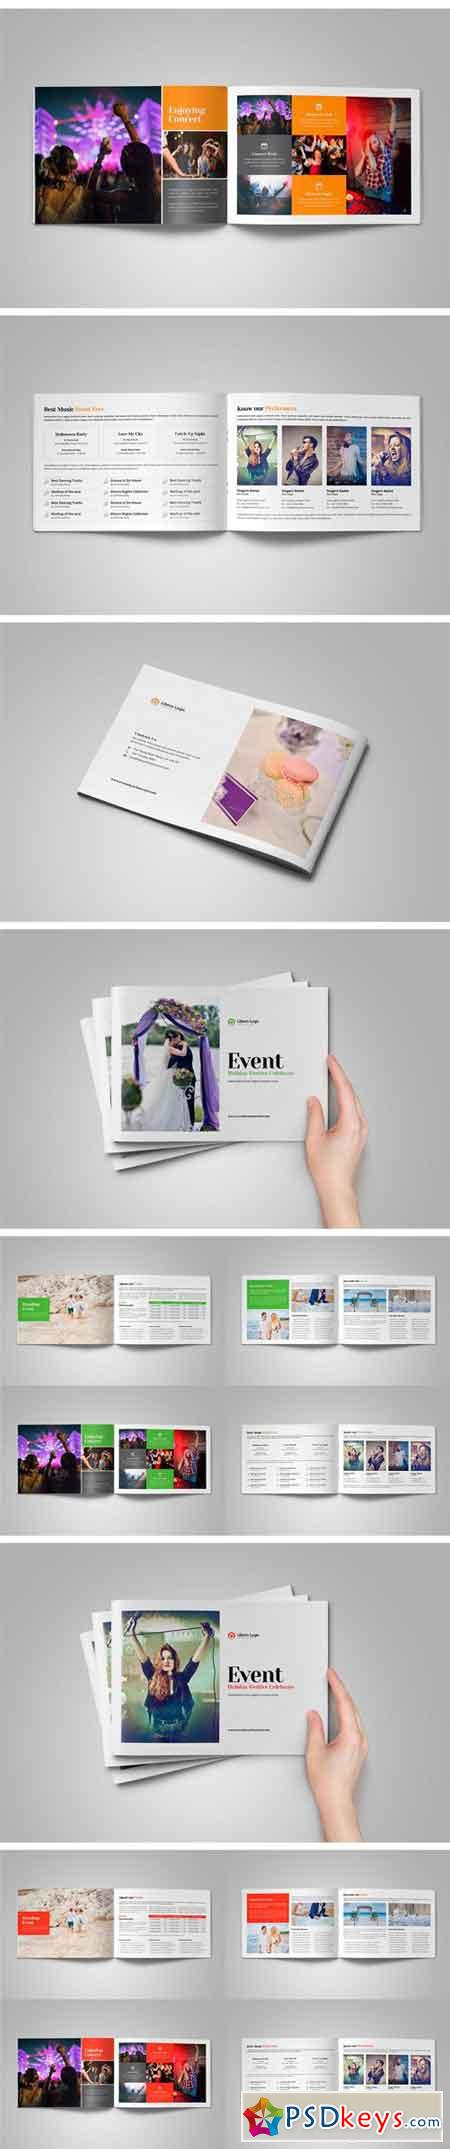 Event Brochure Catalog 2086177